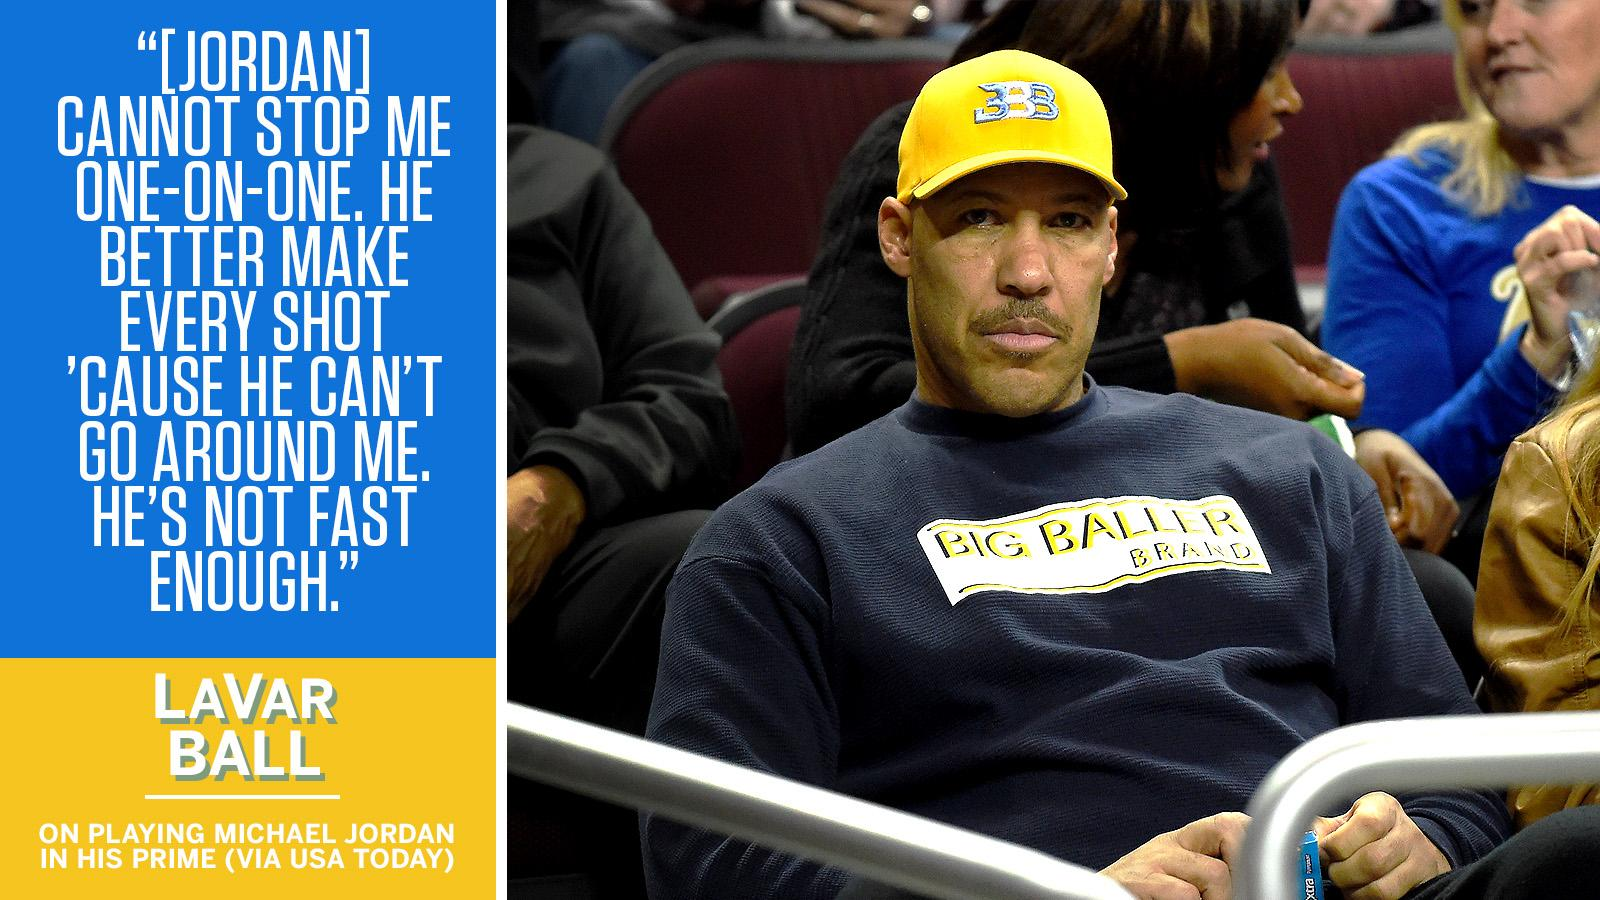 LaVar Ball has yet another hot take.   https://t.co/Mg0uppQych https://t.co/gFVKMFYRFe